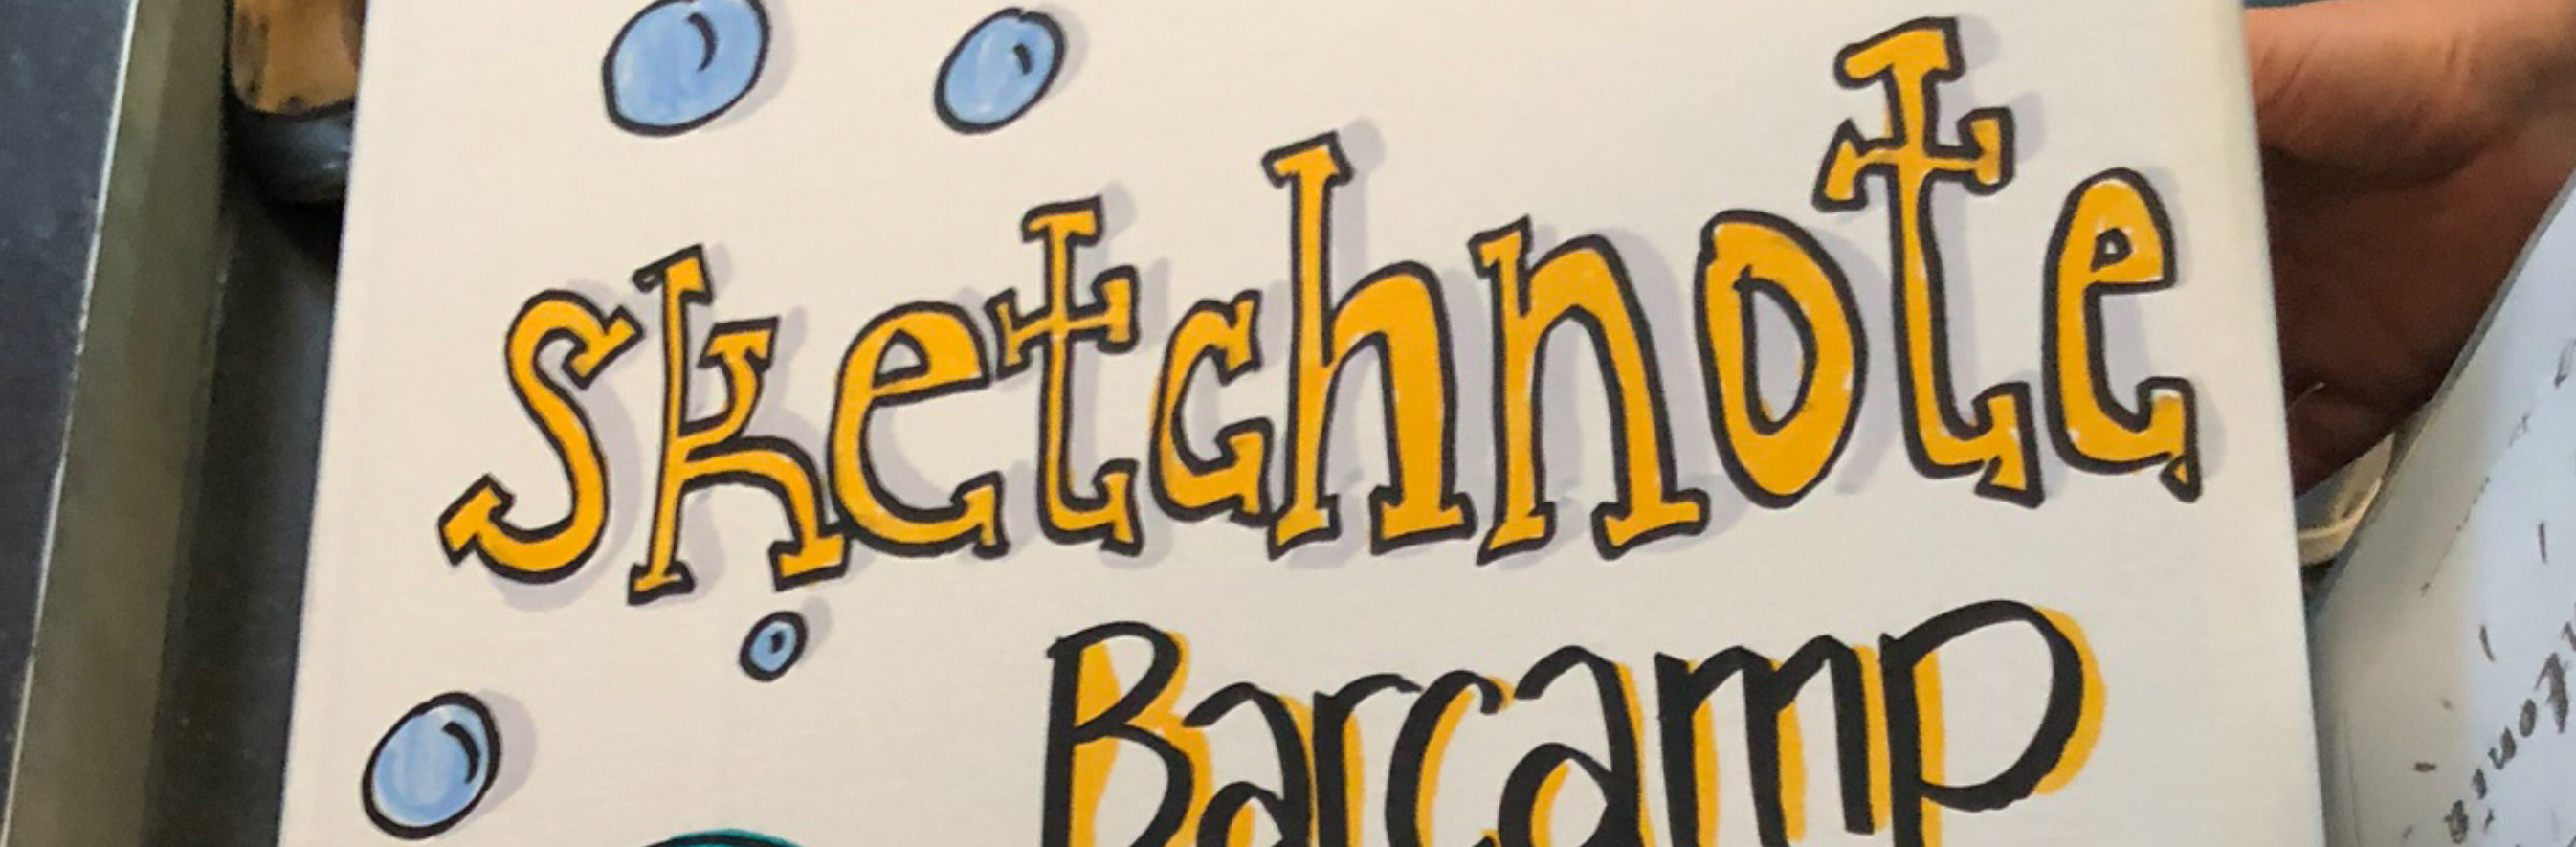 Sketchnote Barcamp Header